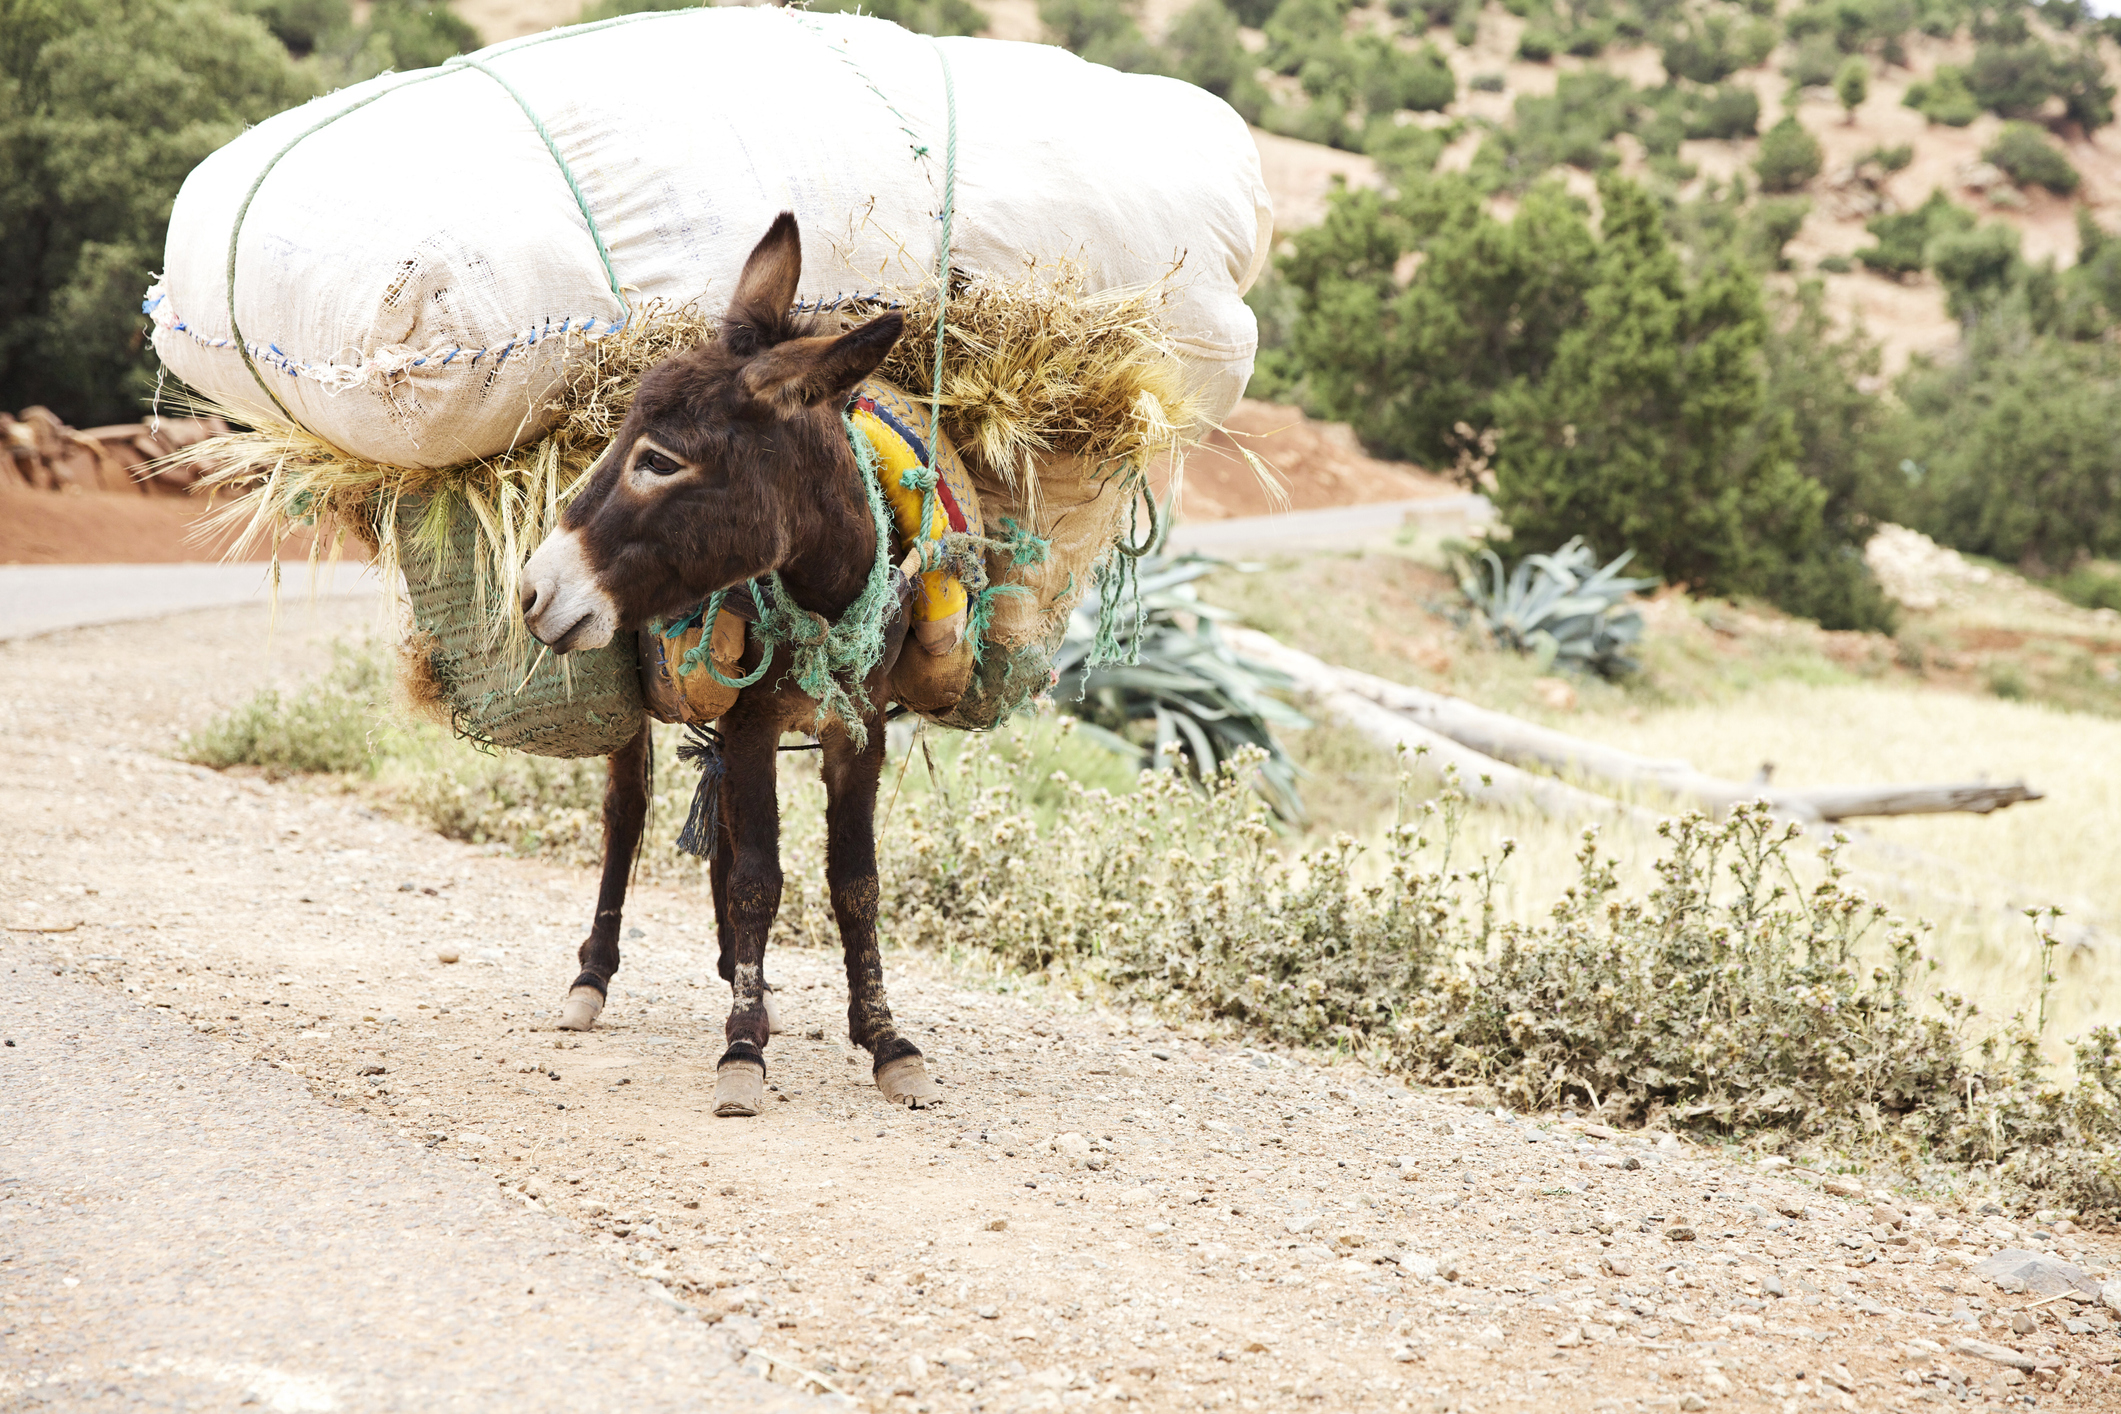 Earth Could Lose Half of Its Donkeys in the Next Five Years, Study Says